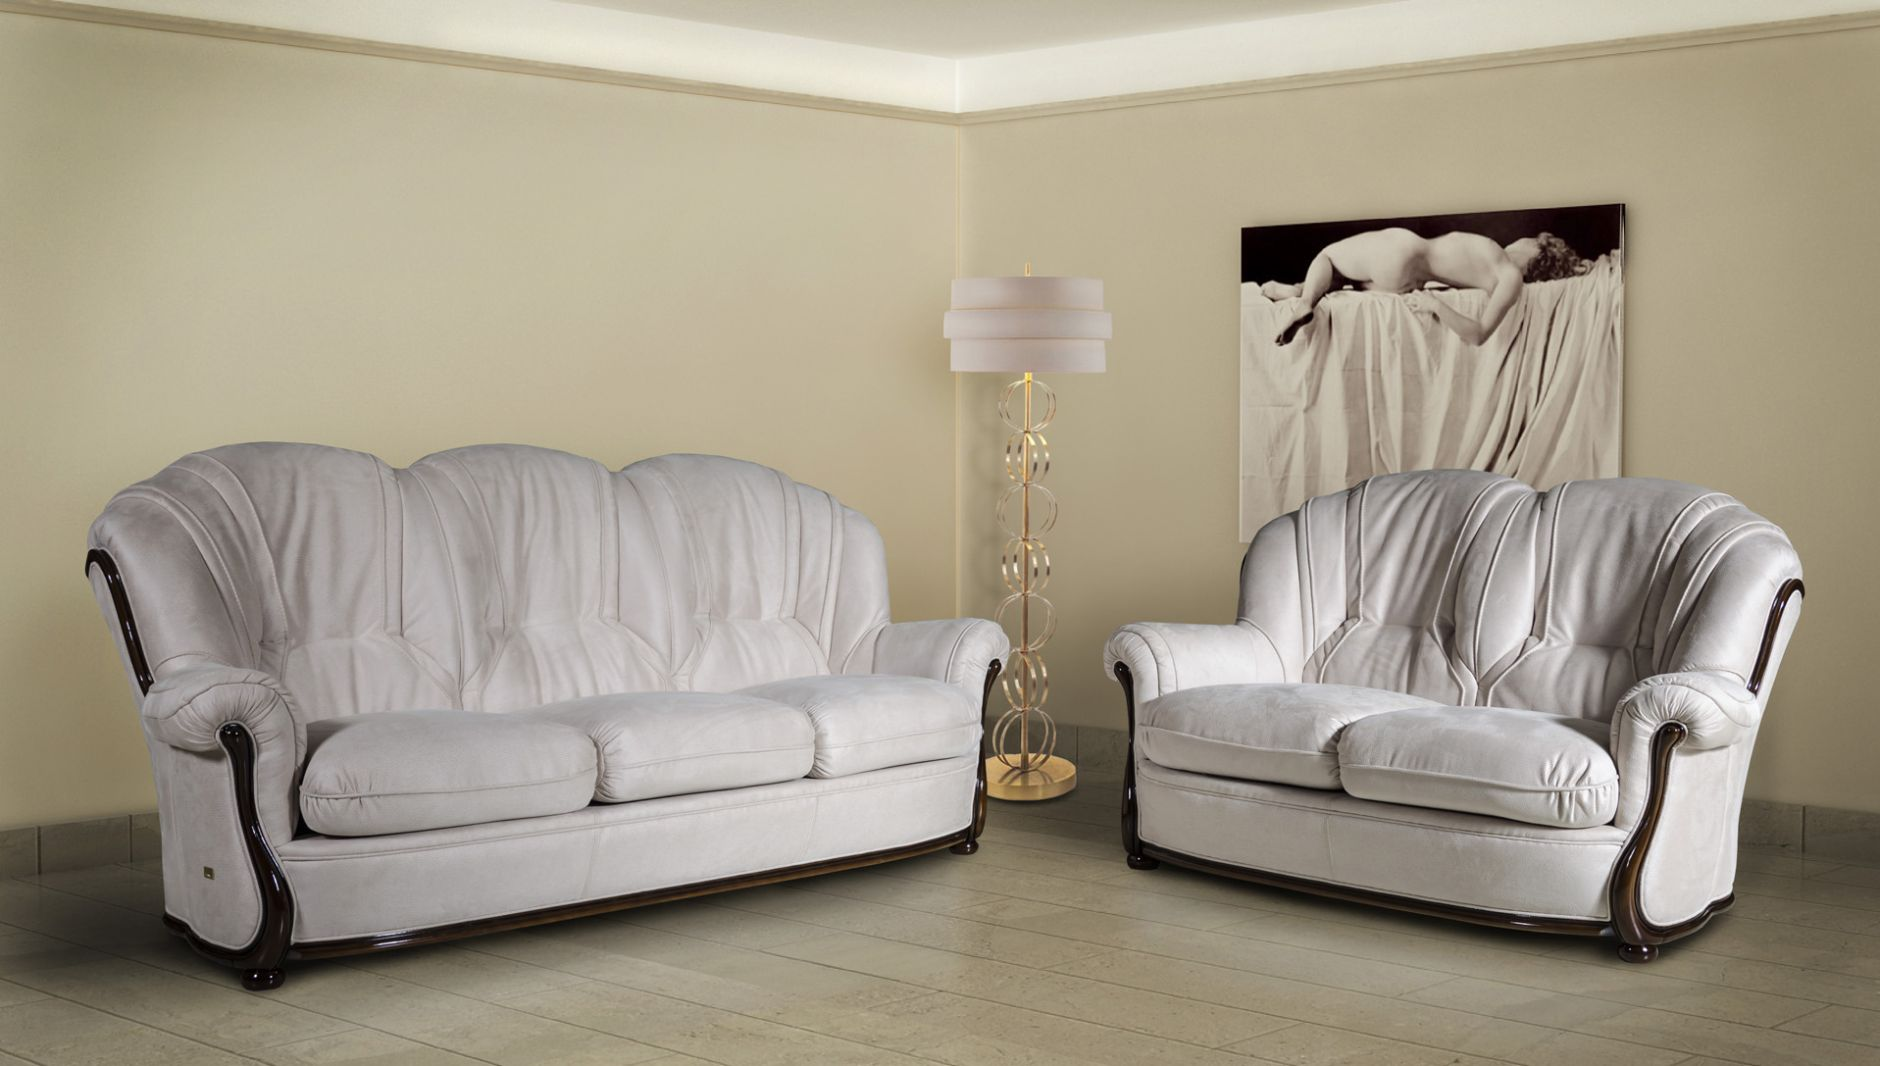 awesome divanidivani luxurioses sofa design pictures